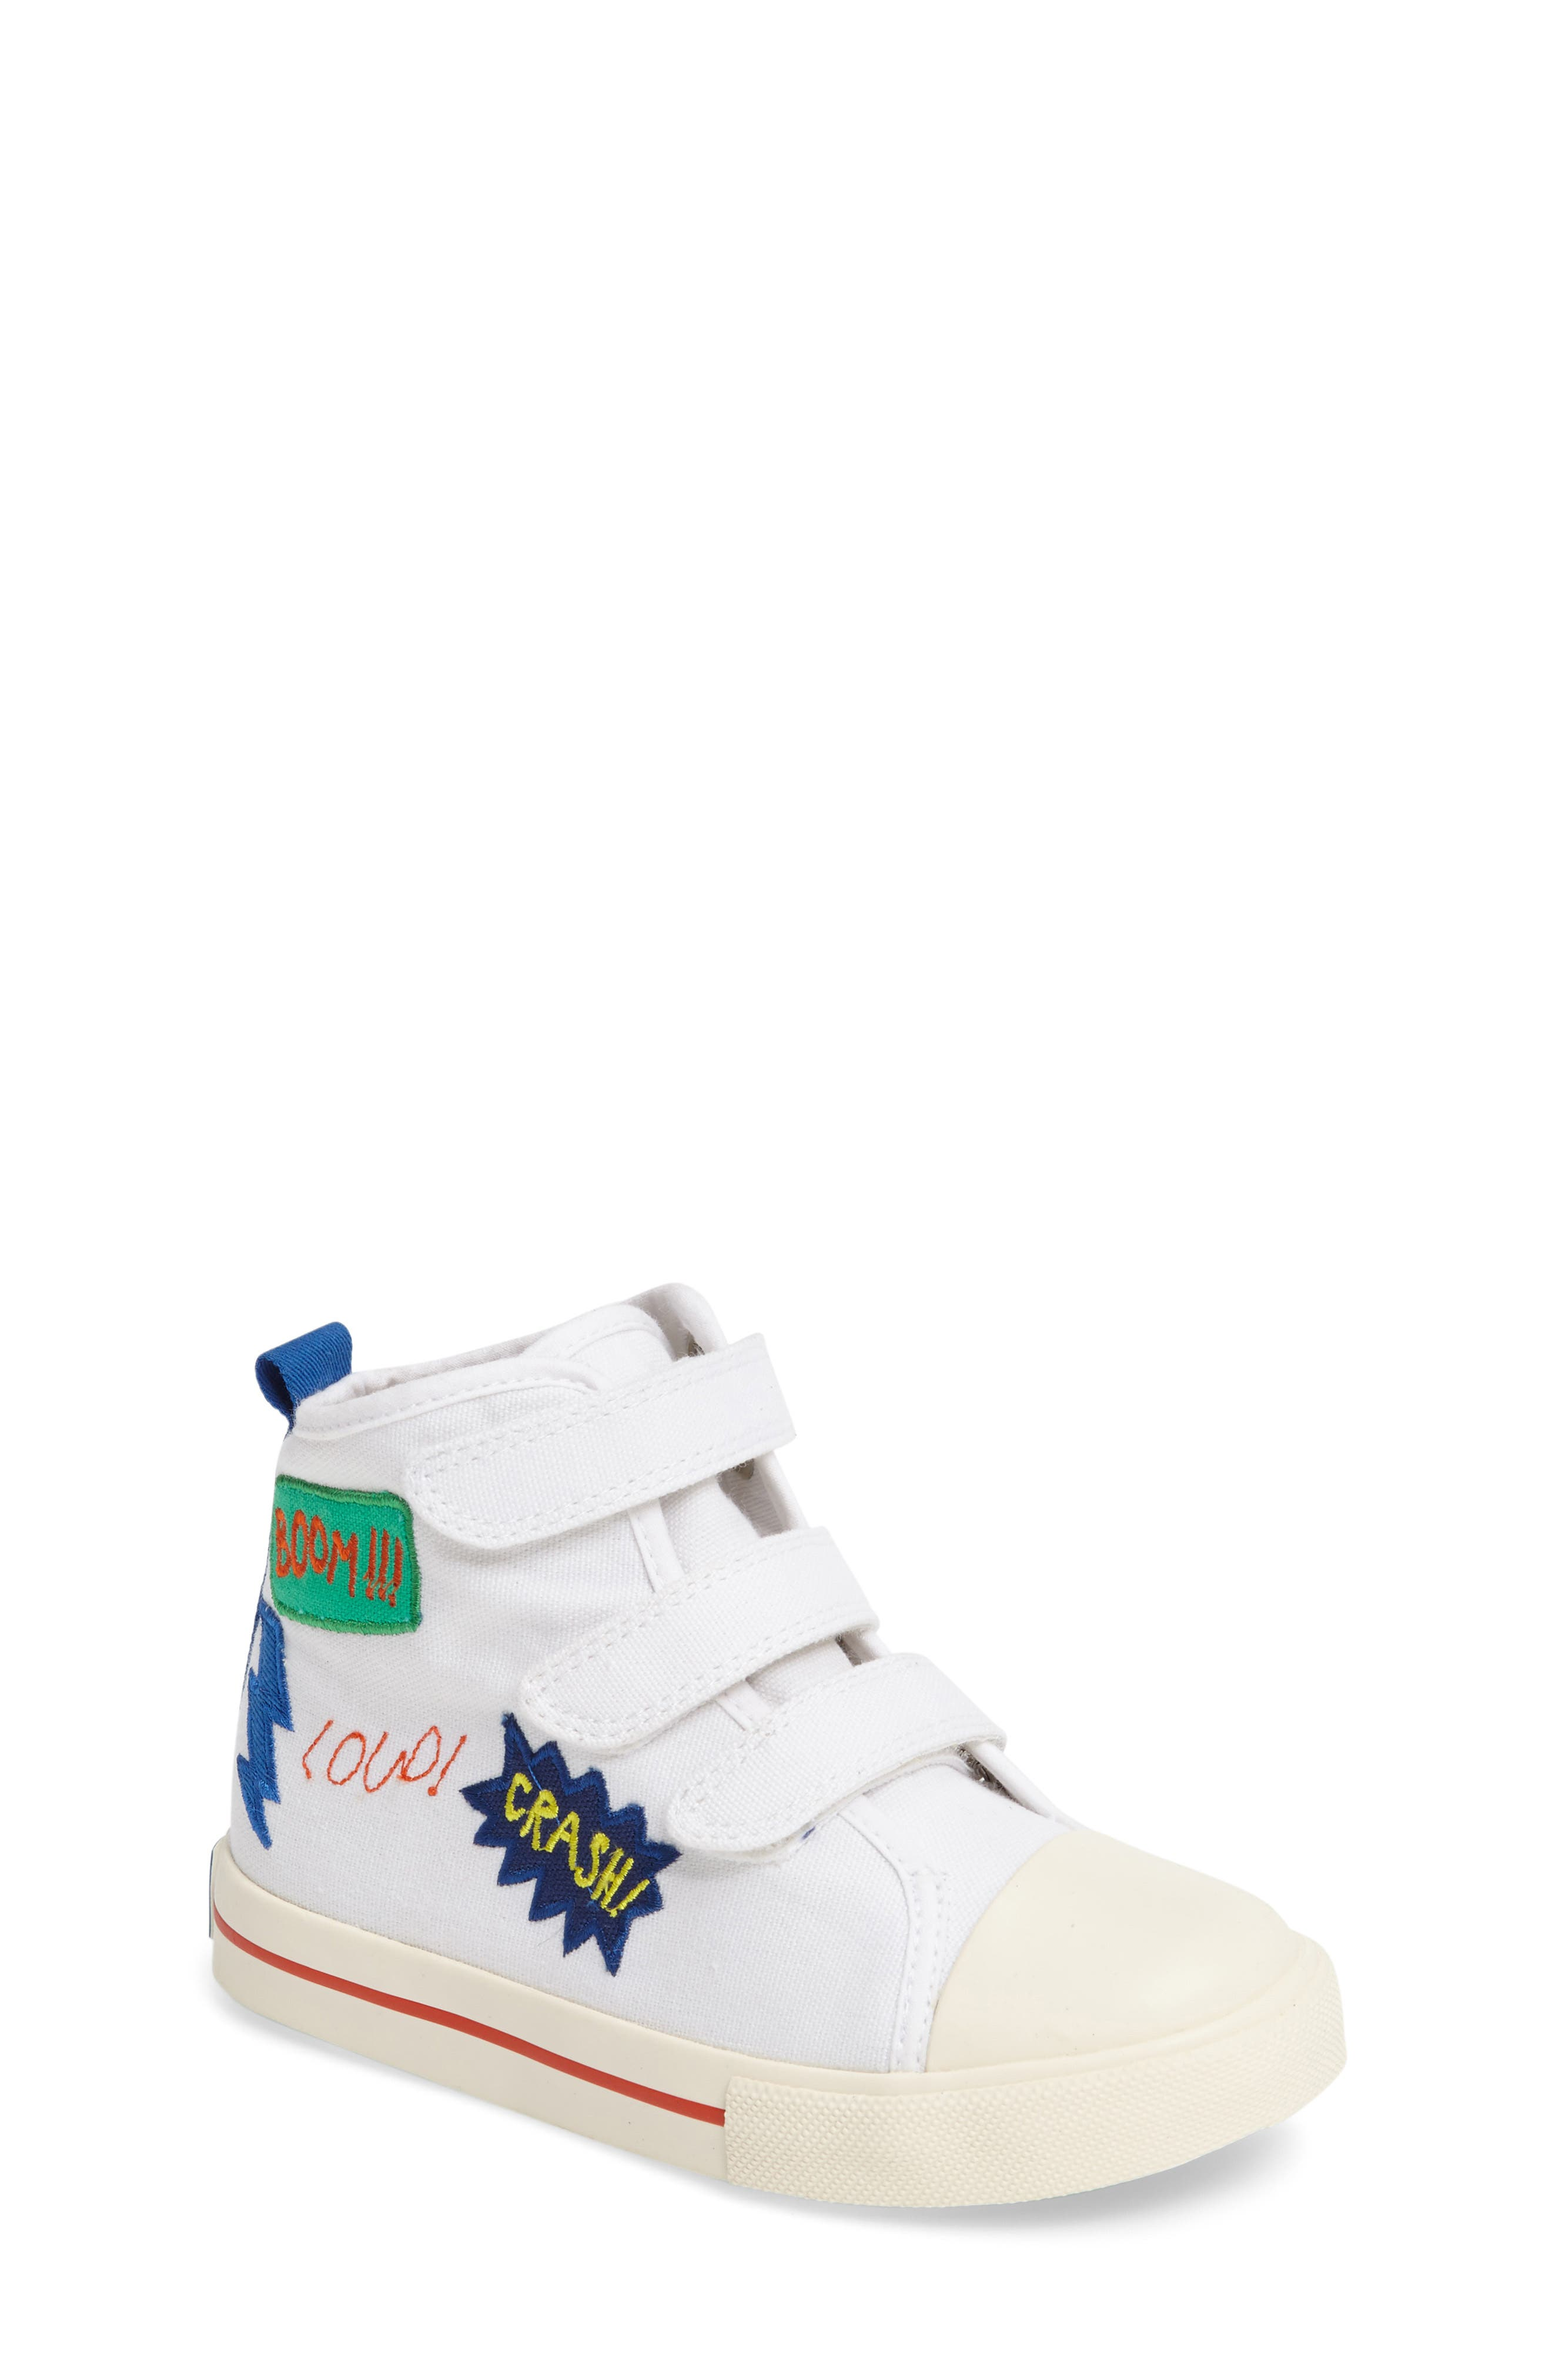 High Top Sneaker,                             Main thumbnail 1, color,                             White